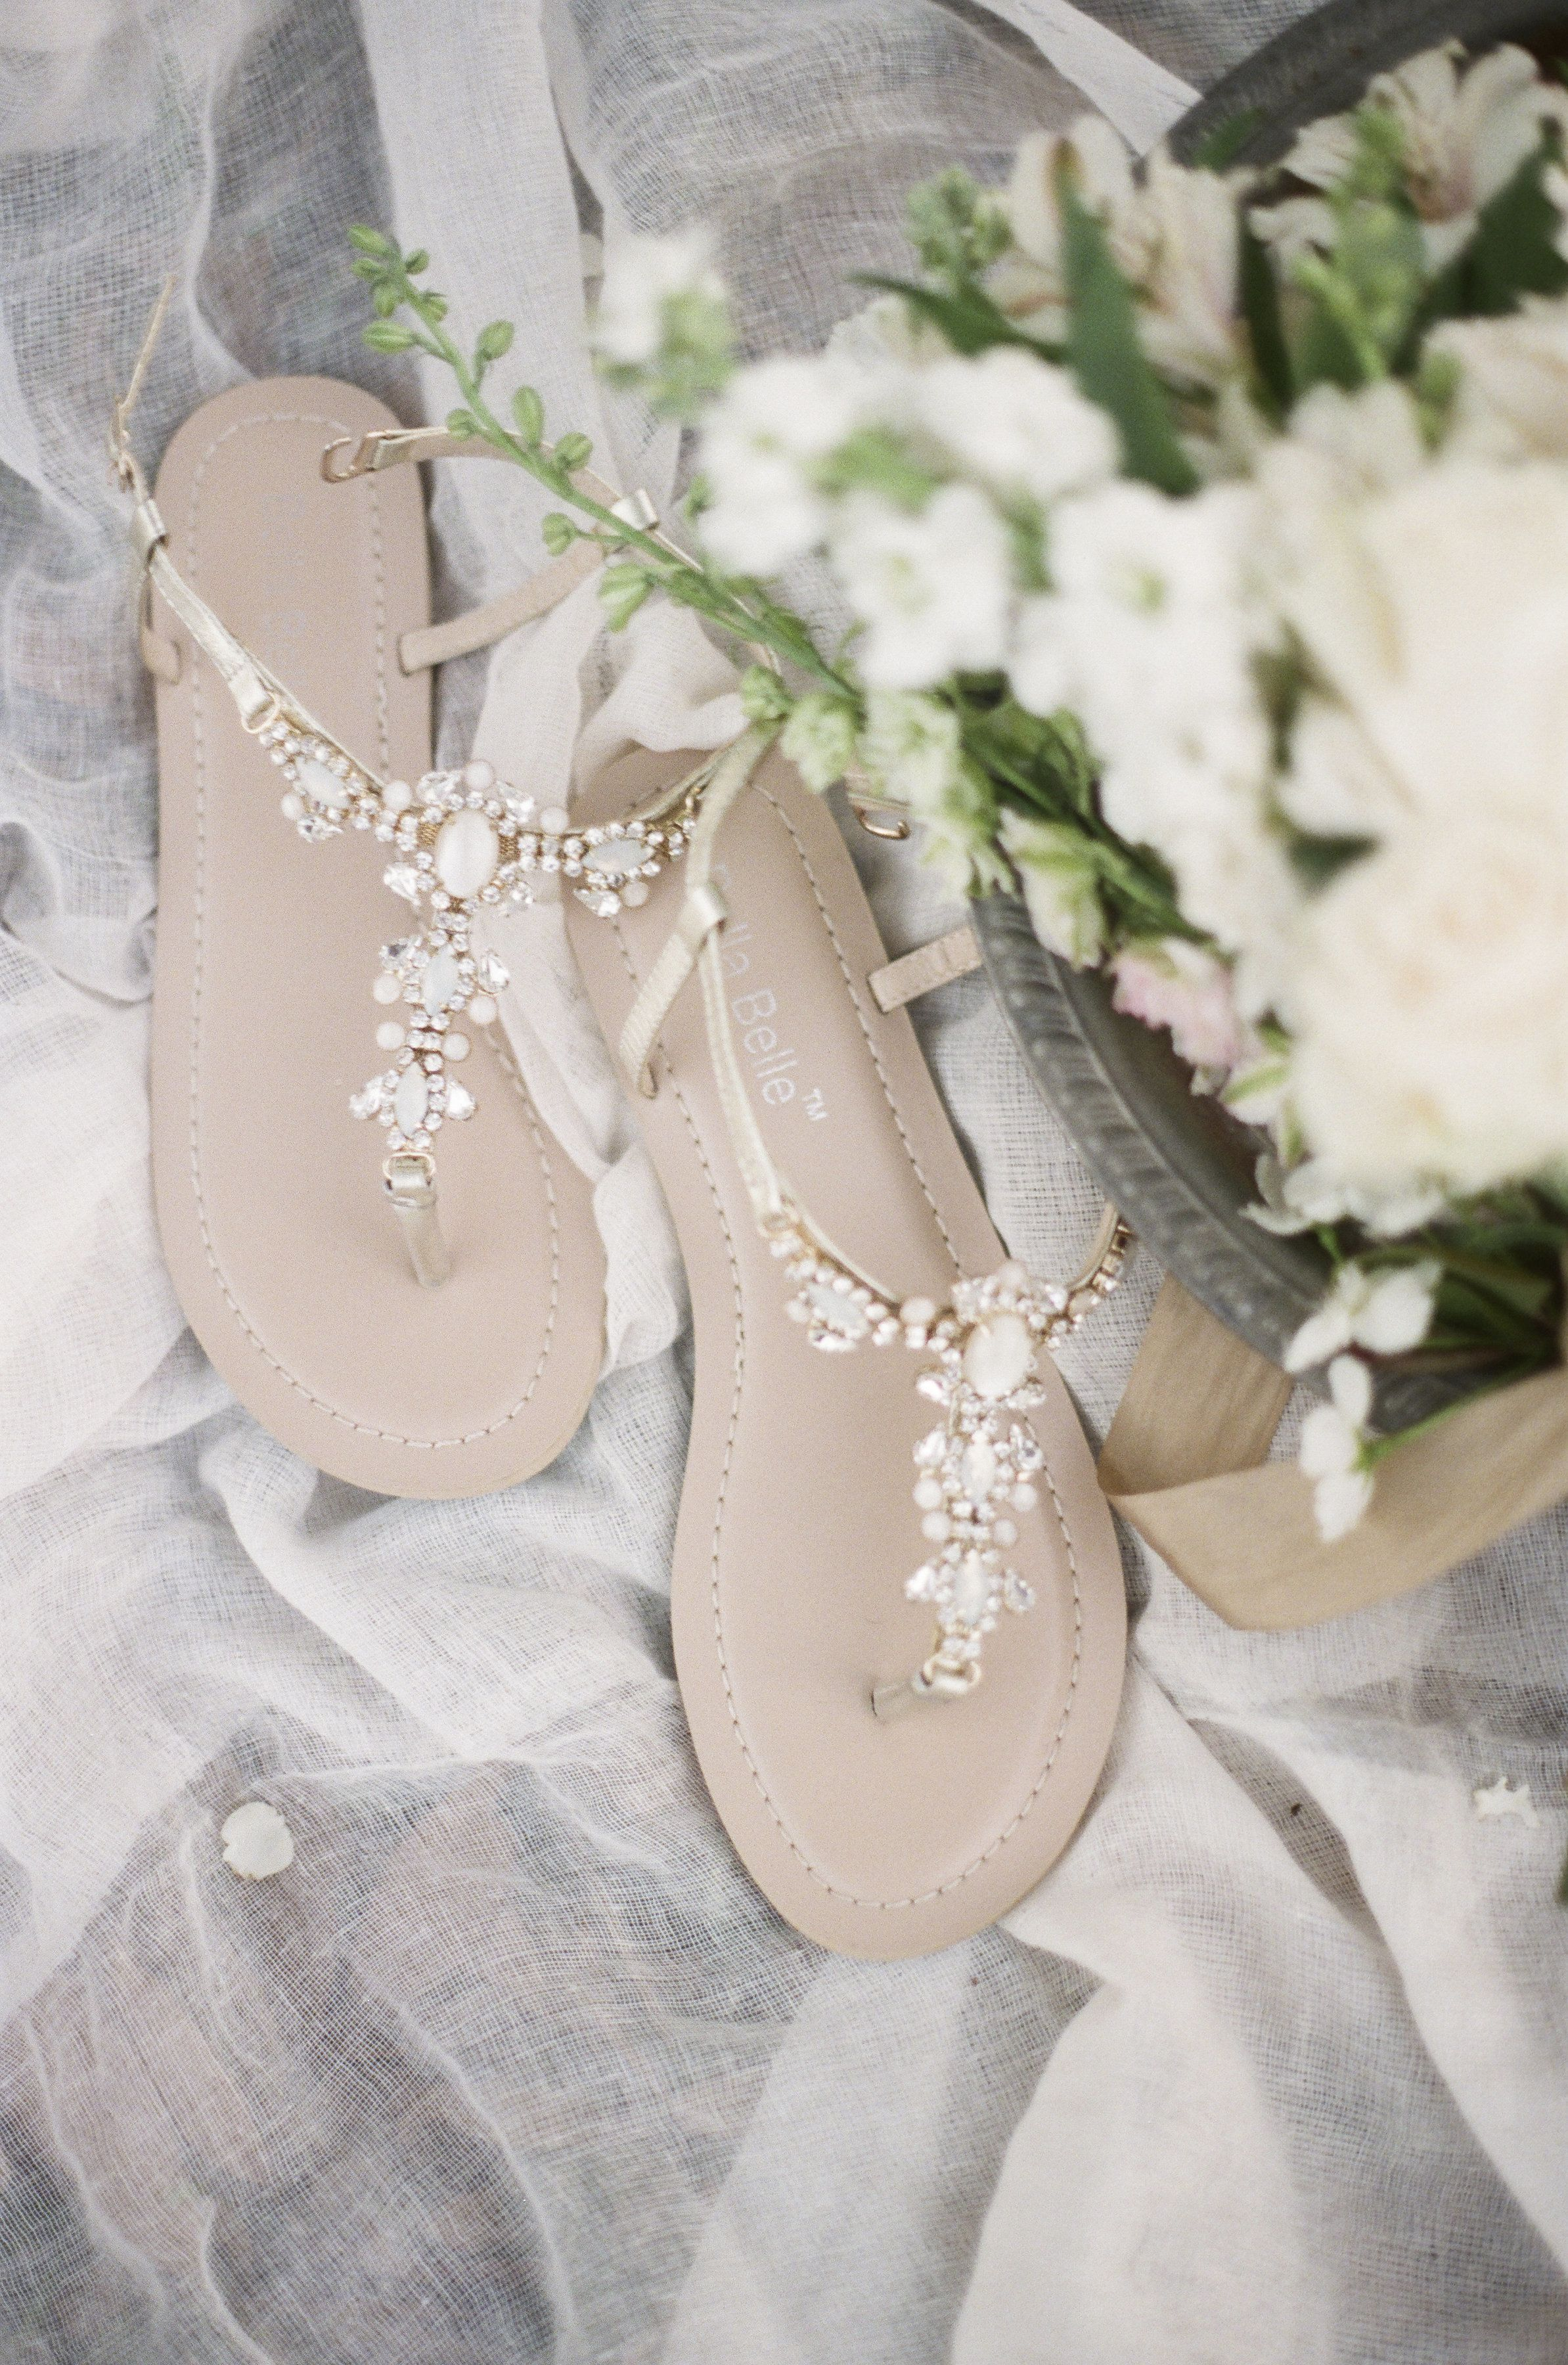 fb60e5c25 Our Top 10 Bella Belle Shoe Picks for Your Big Day in 2019 | Shoes ...